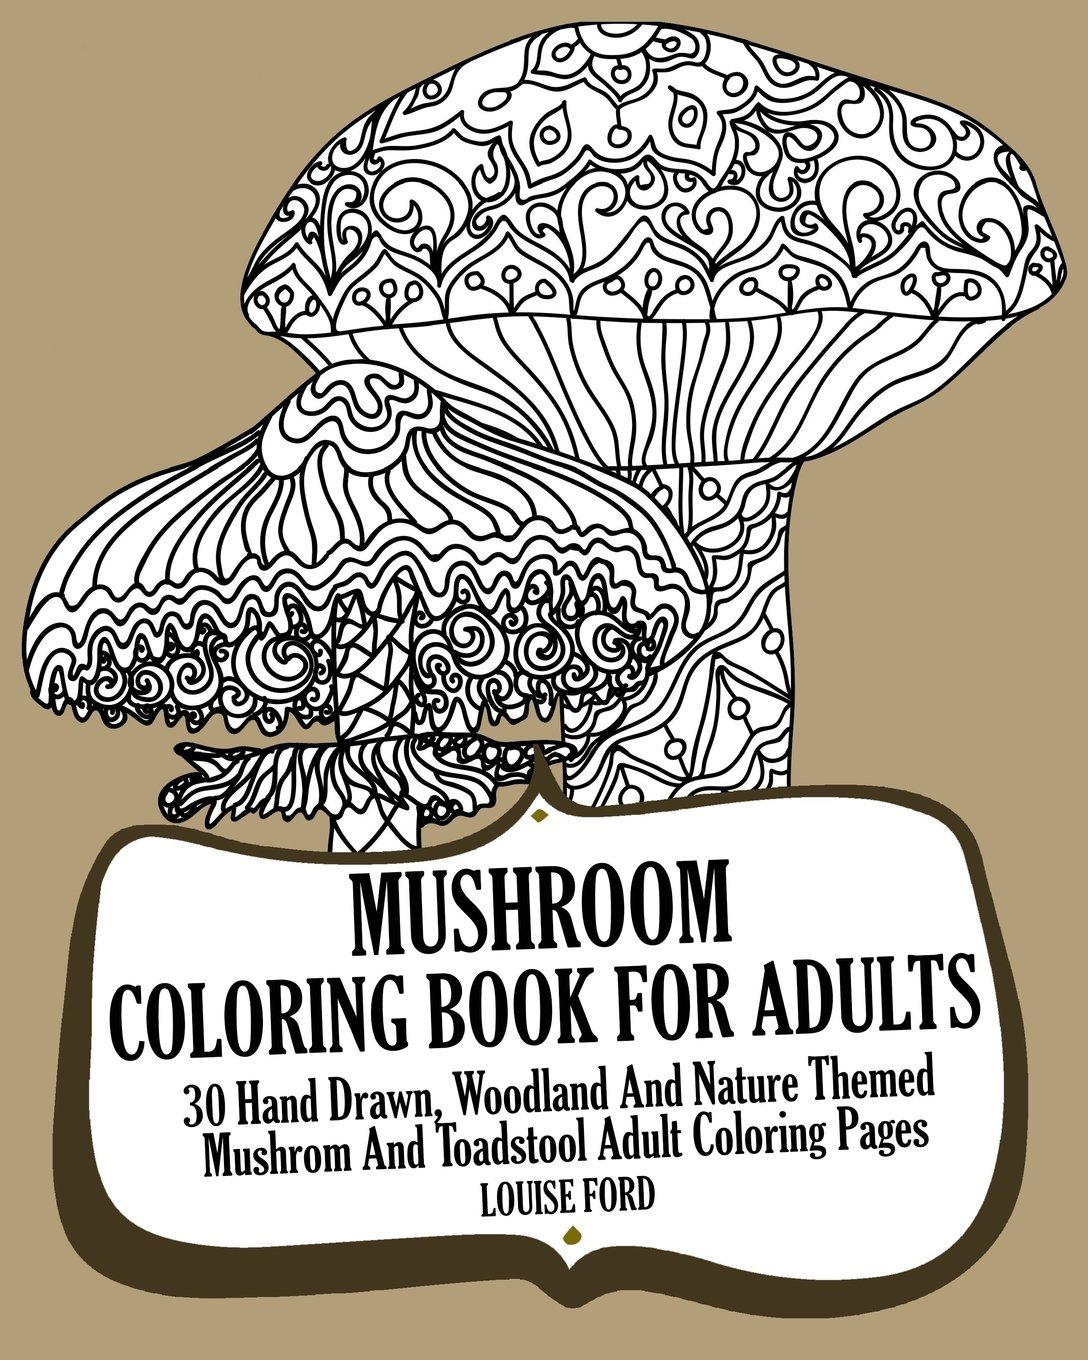 Mushroom Coloring Book For Adults: 30 Hand Drawn, Woodland And ...